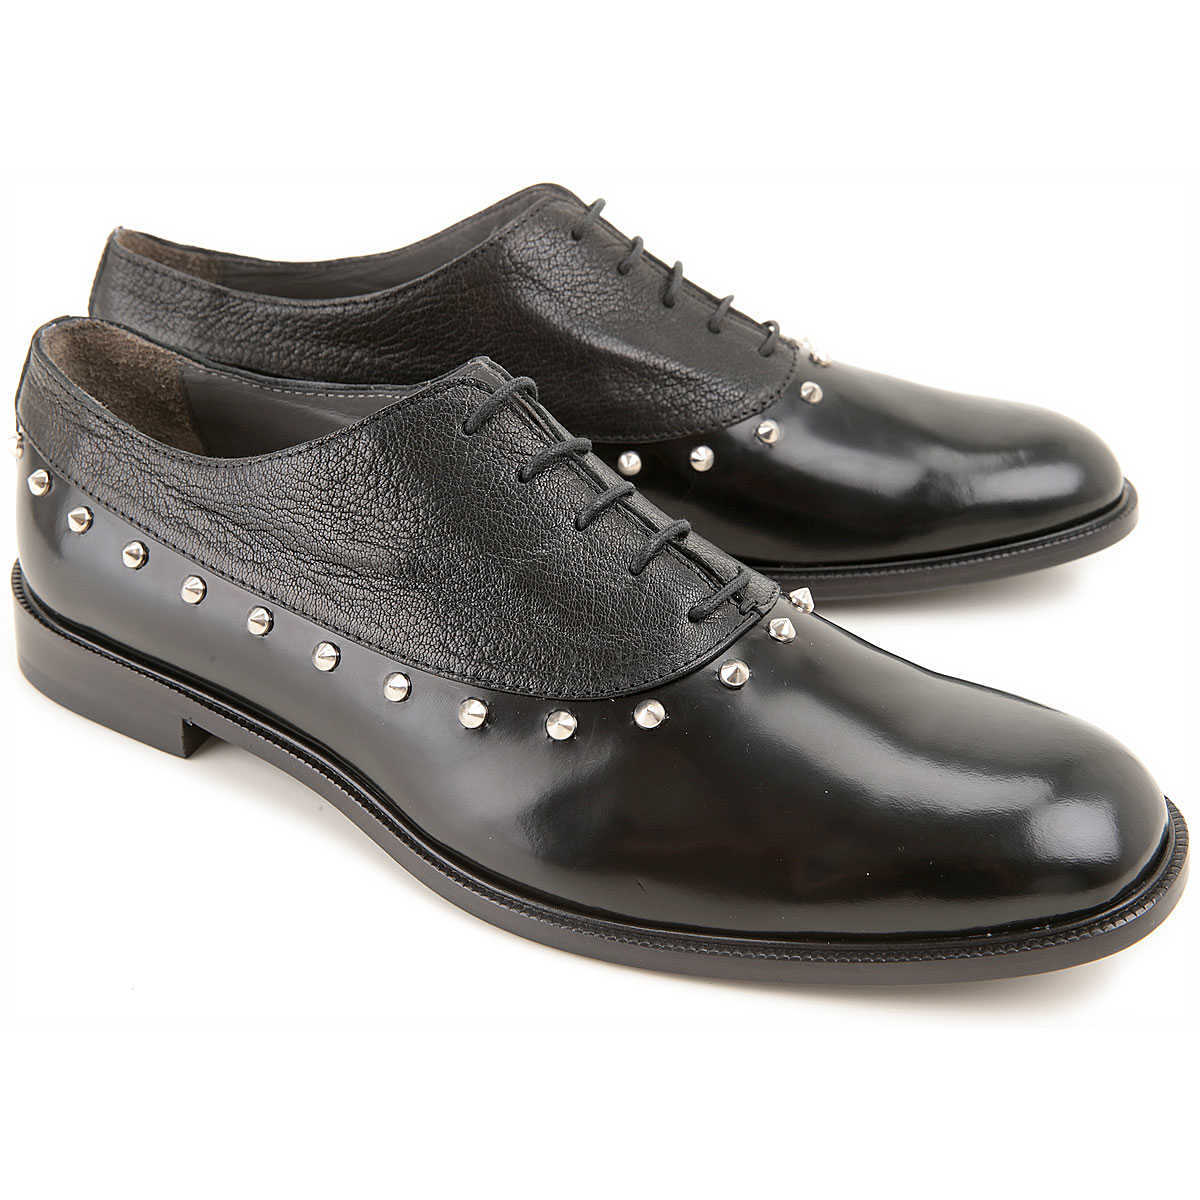 Giacomorelli Lace Up Shoes for Men Oxfords Derbies and Brogues On Sale DK - GOOFASH - Mens FORMAL SHOES